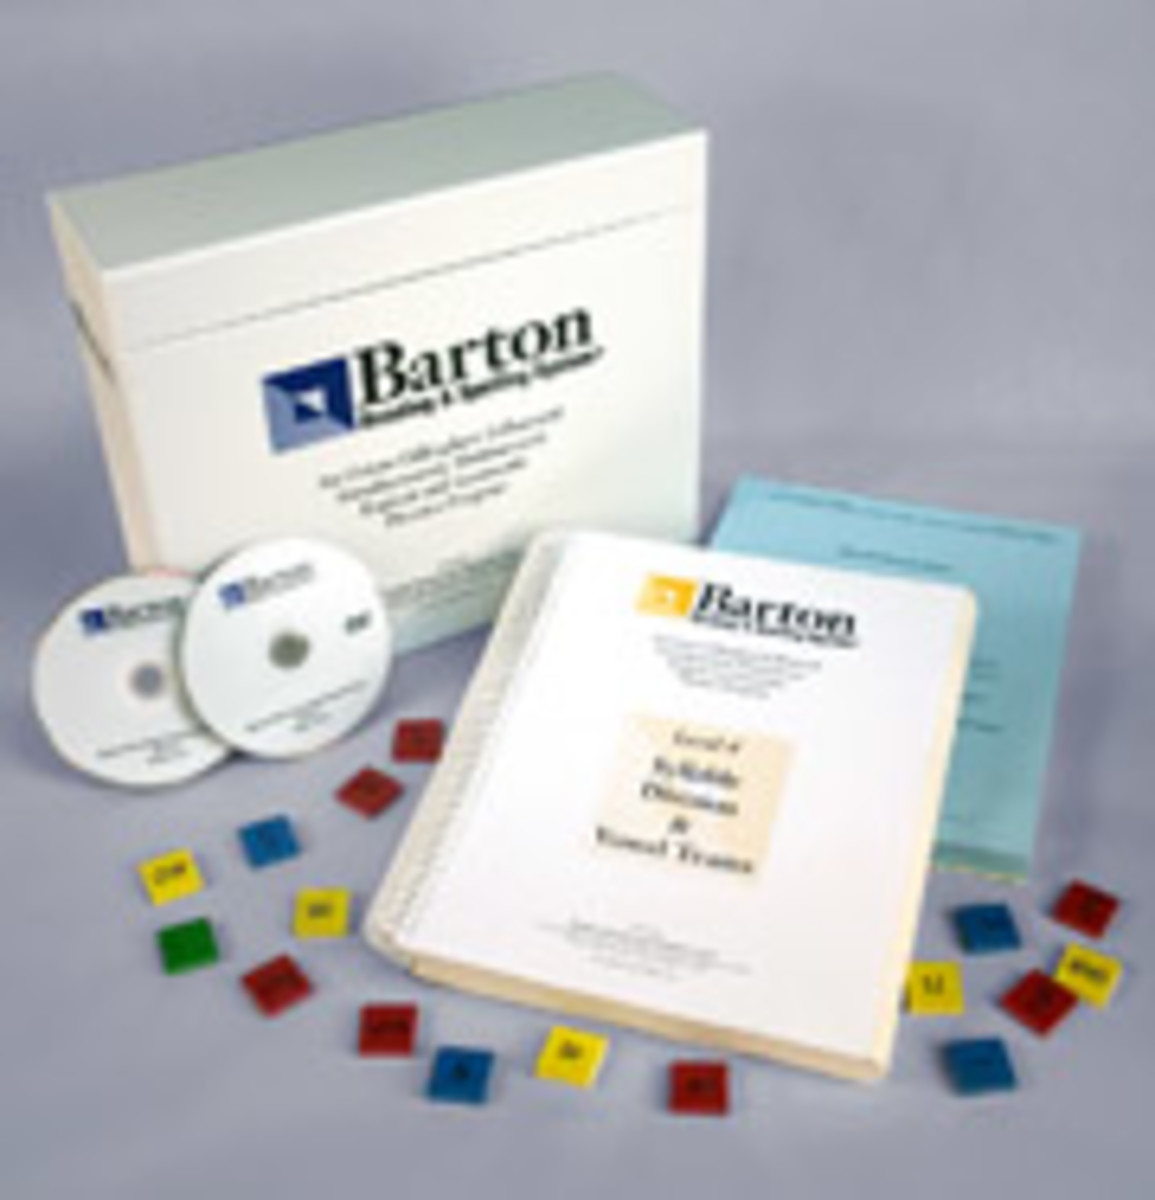 The Susan Barton System for tutoring children with Dyslexia